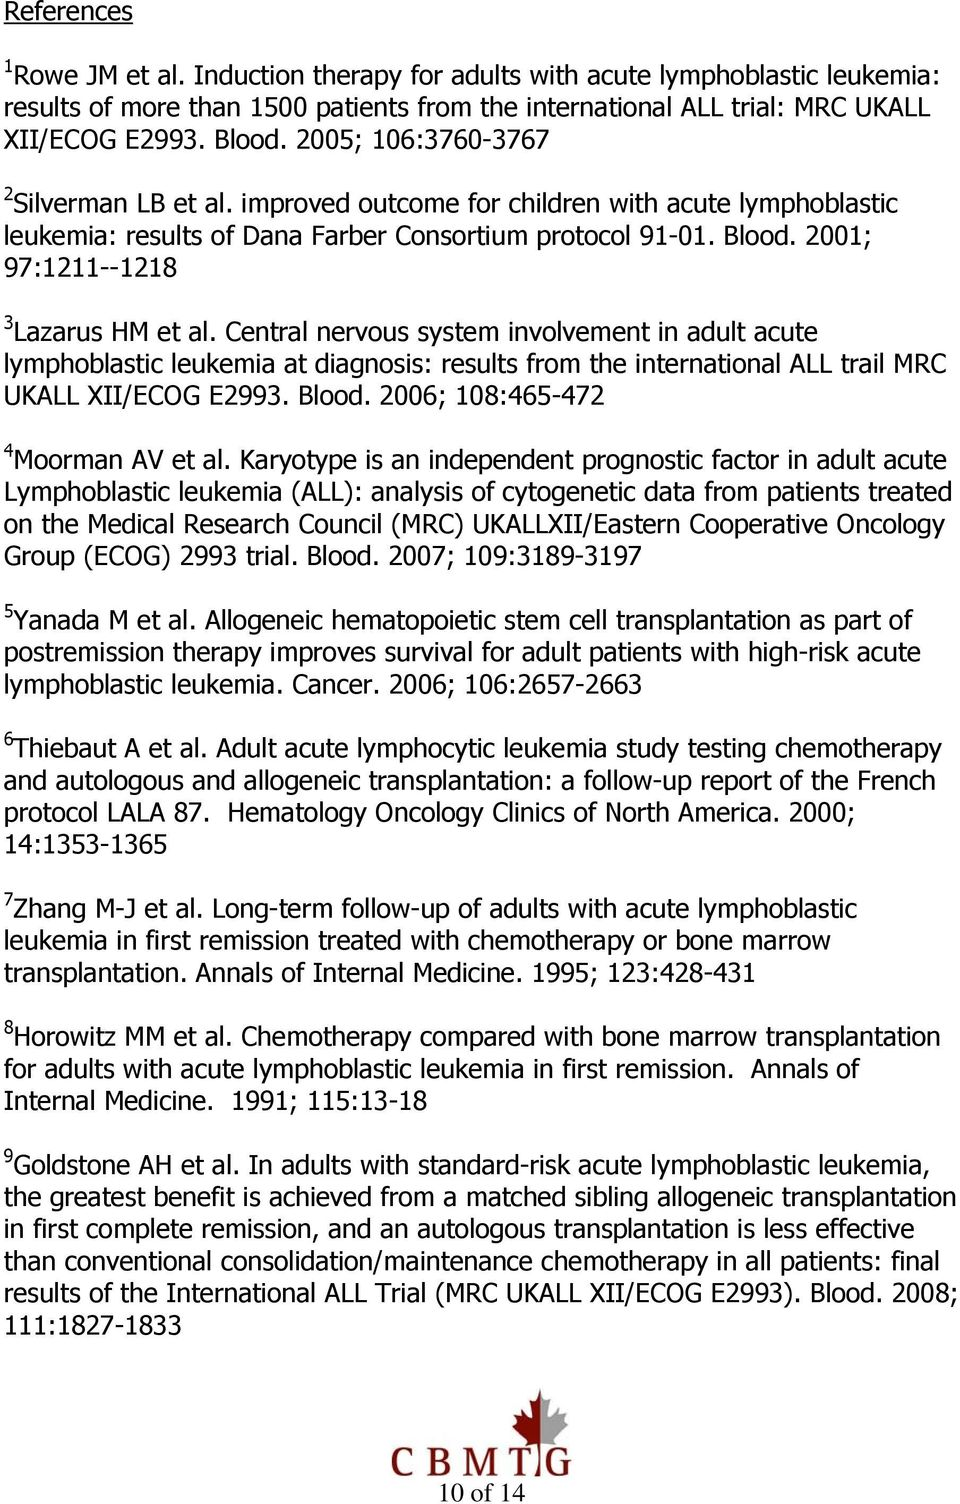 2001; 97:1211--1218 3 Lazarus HM et al. Central nervous system involvement in adult acute lymphoblastic leukemia at diagnosis: results from the international ALL trail MRC UKALL XII/ECOG E2993. Blood.